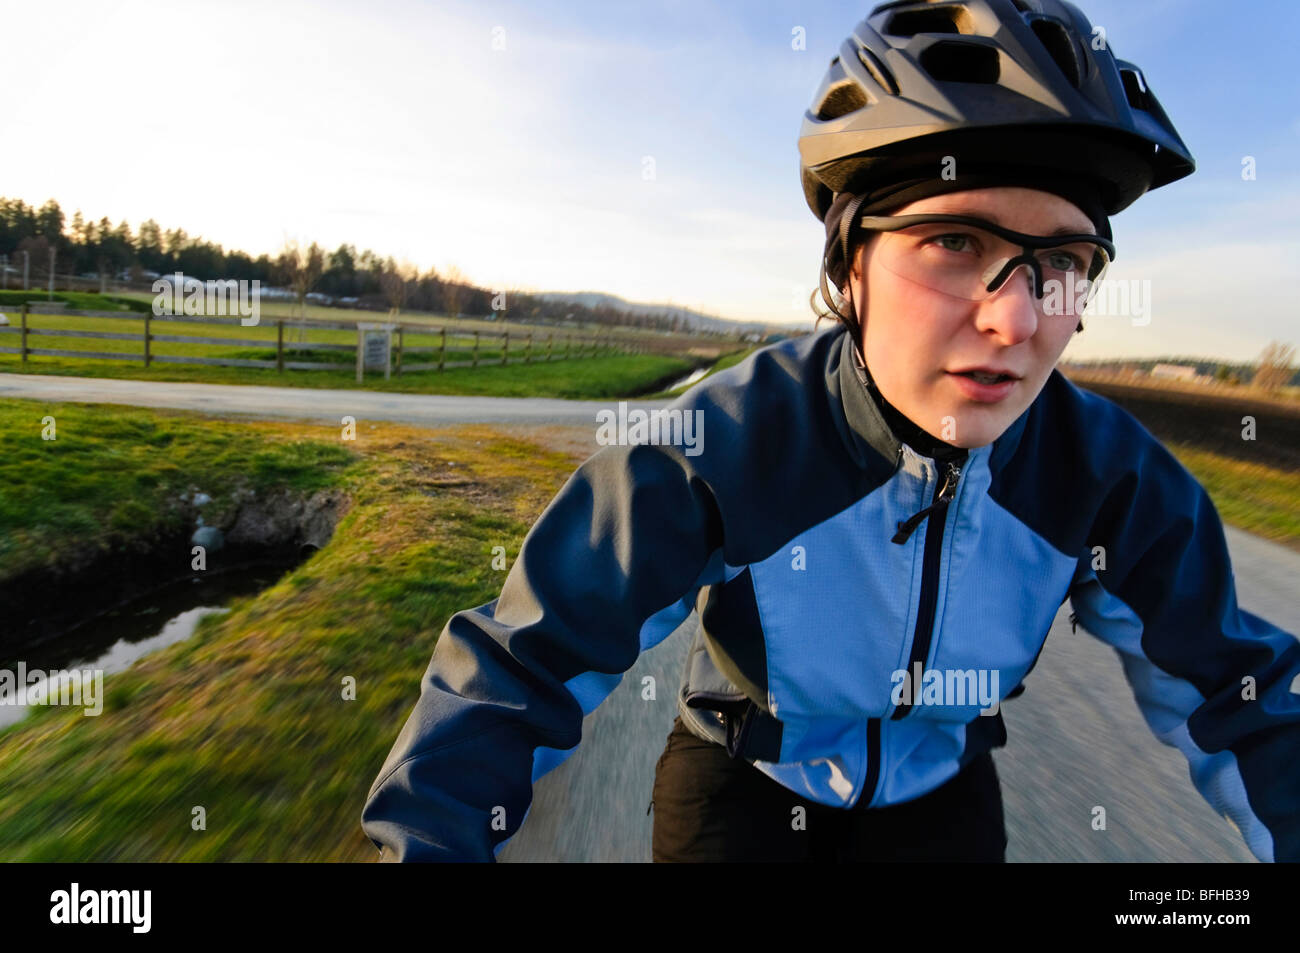 POV image of a female cyclist, Victoria BC. - Stock Image